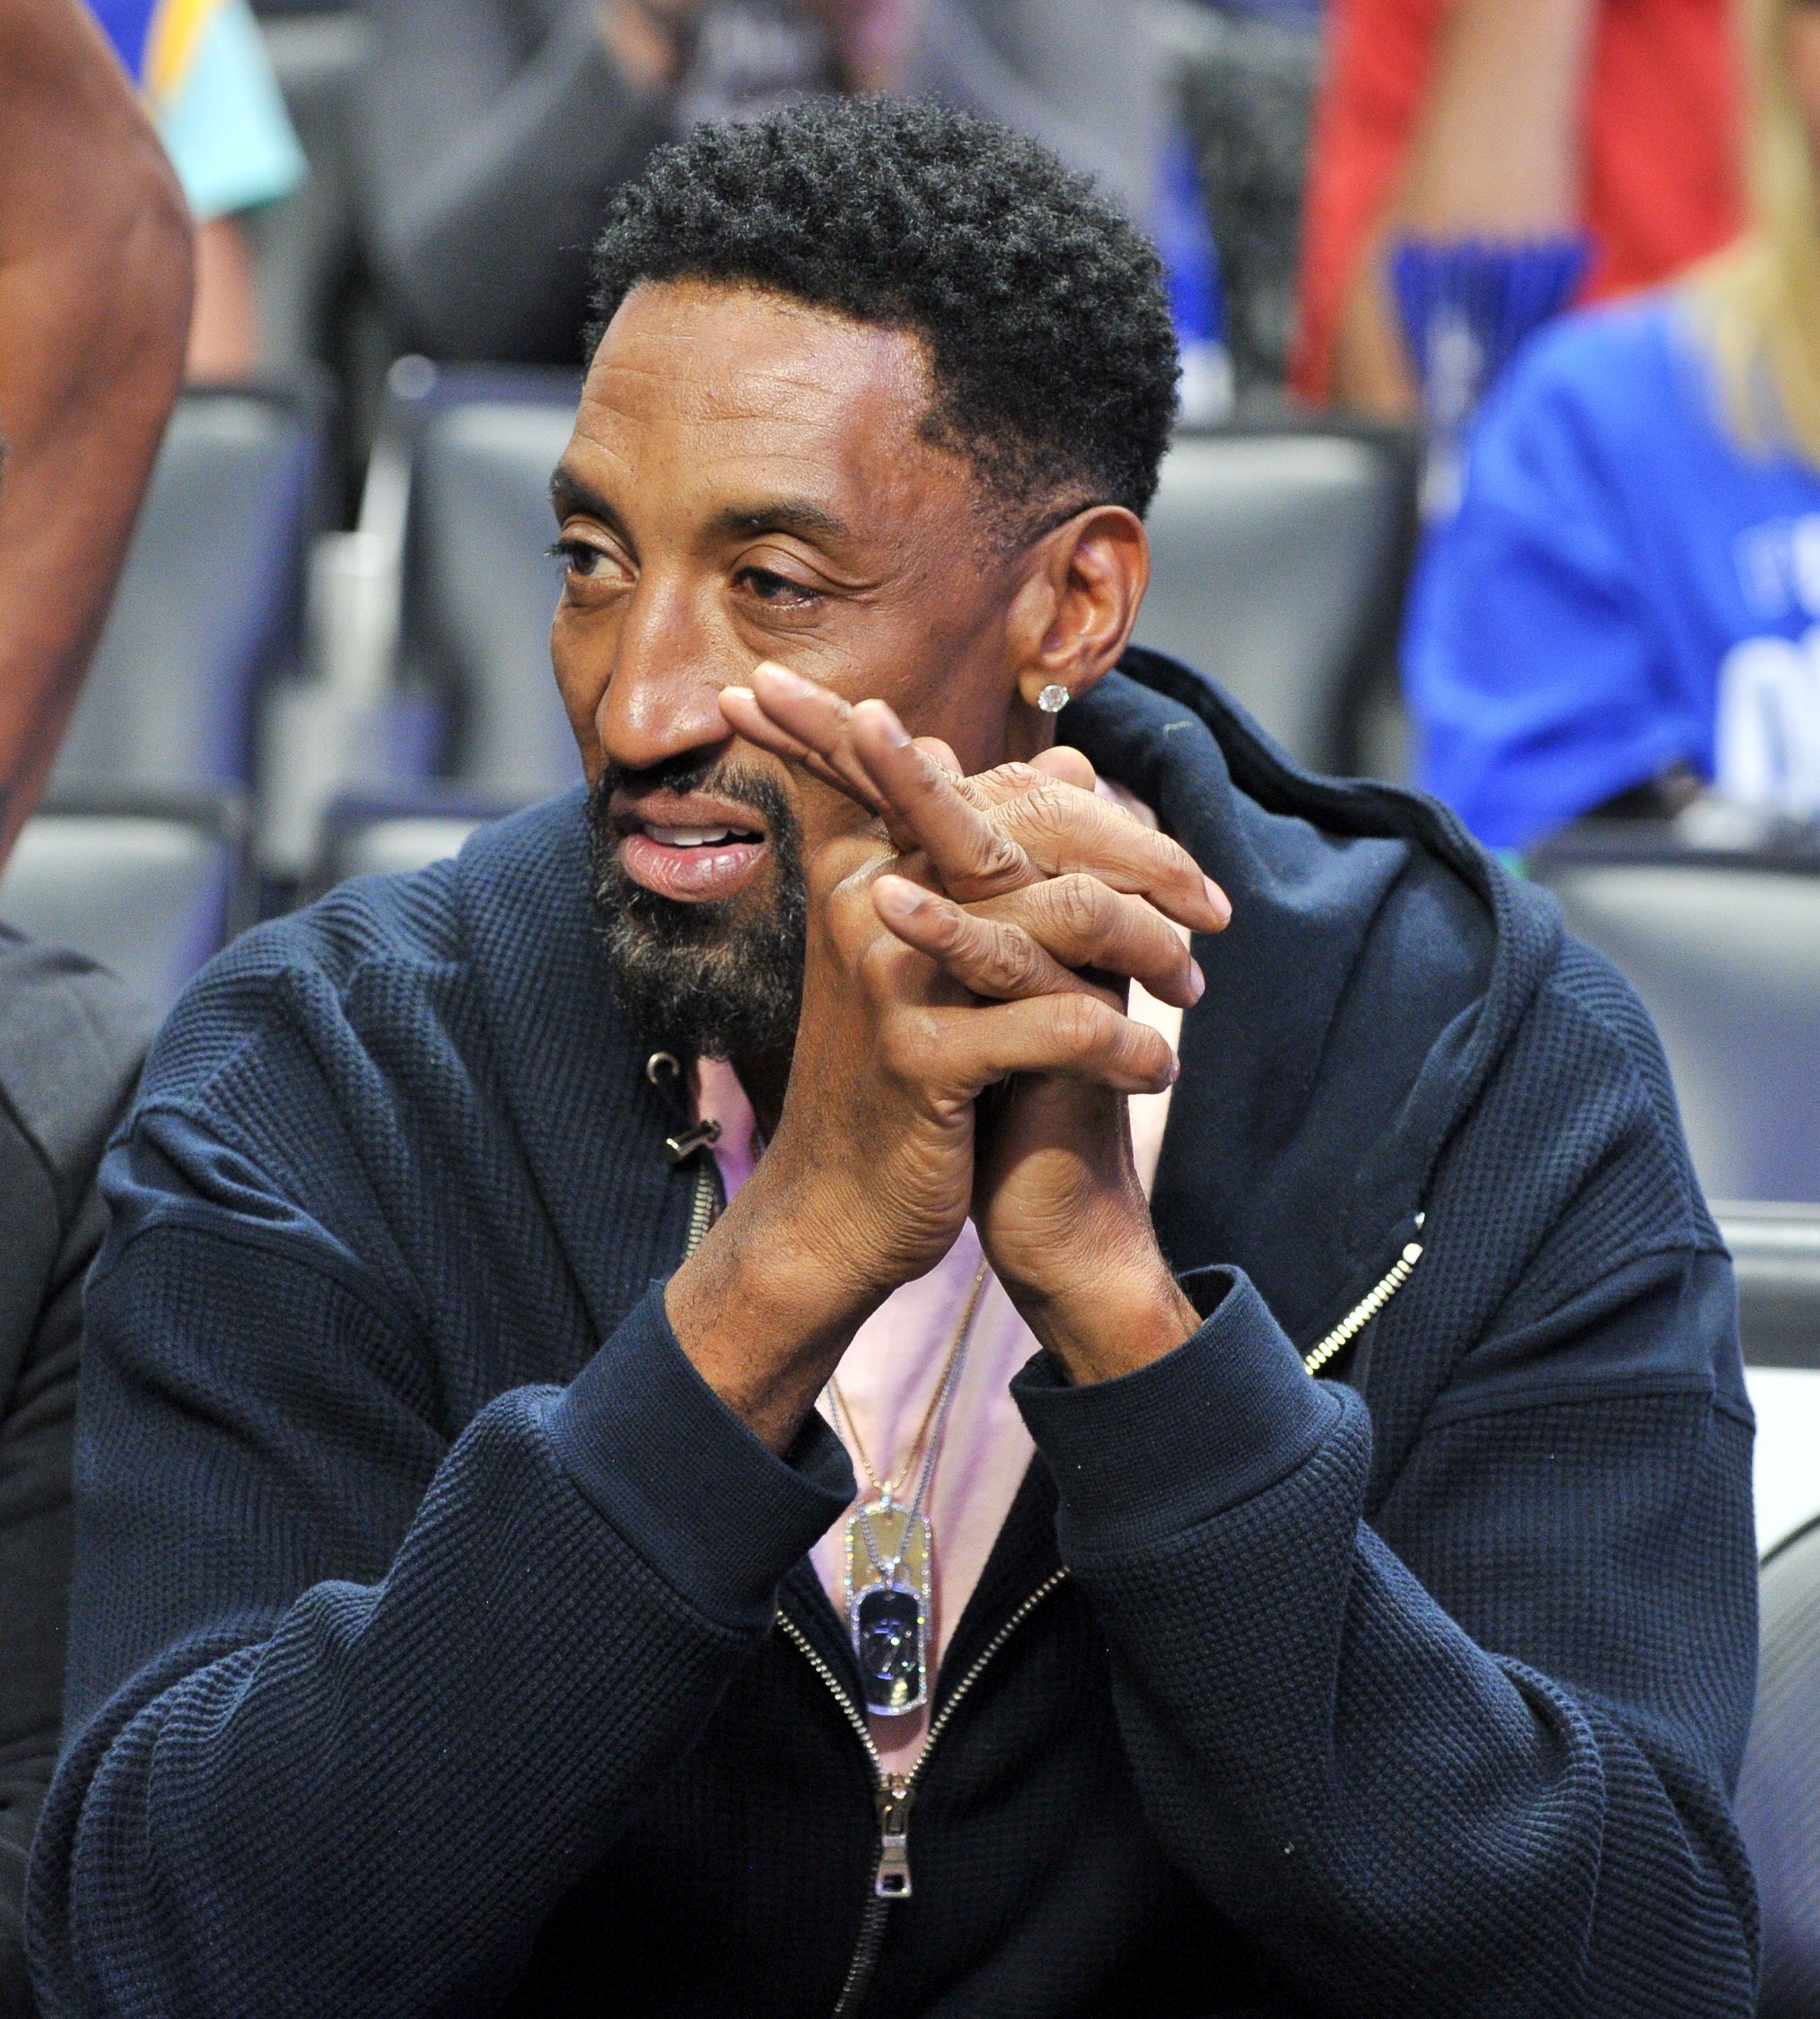 Former pro baller Scottie Pippen attends an NBA playoffs basketball game between the Los Angeles Clippers and the Golden State Warriors at the Staples Center on April 18, 2019. | Photo: Getty Images